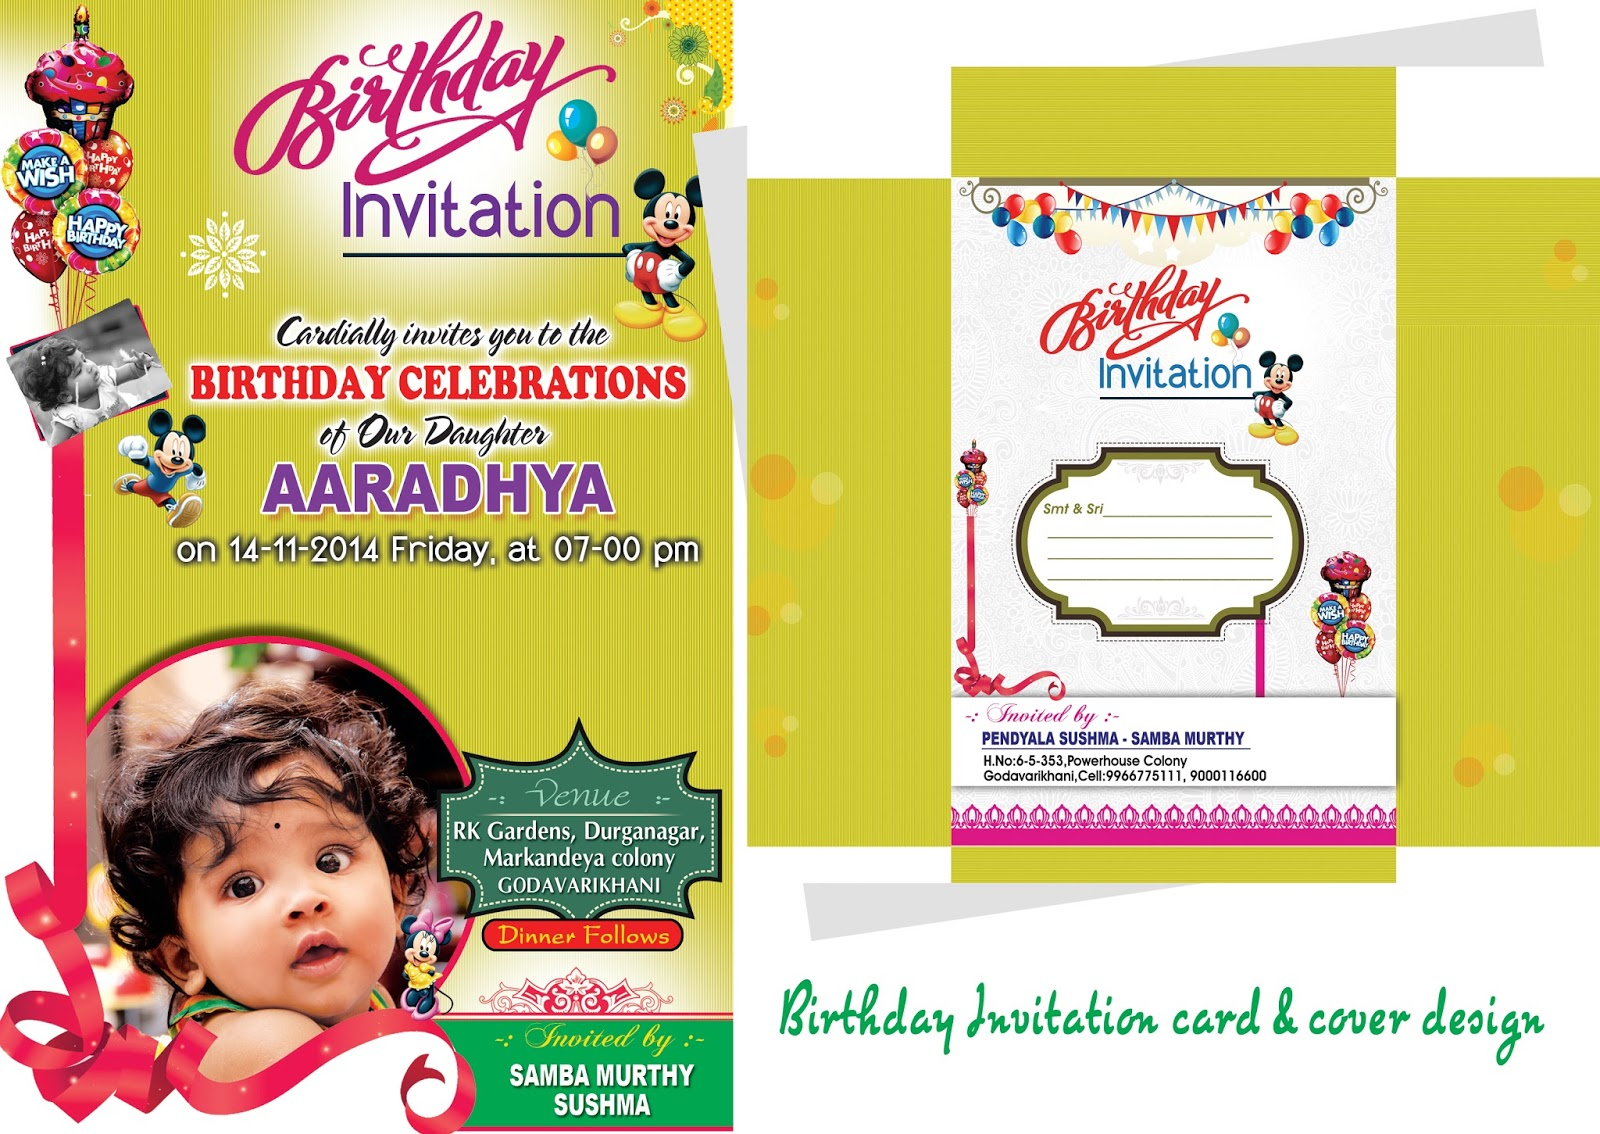 birthday banner psd templates free download ; birthday-invitation-card-psd-template-free